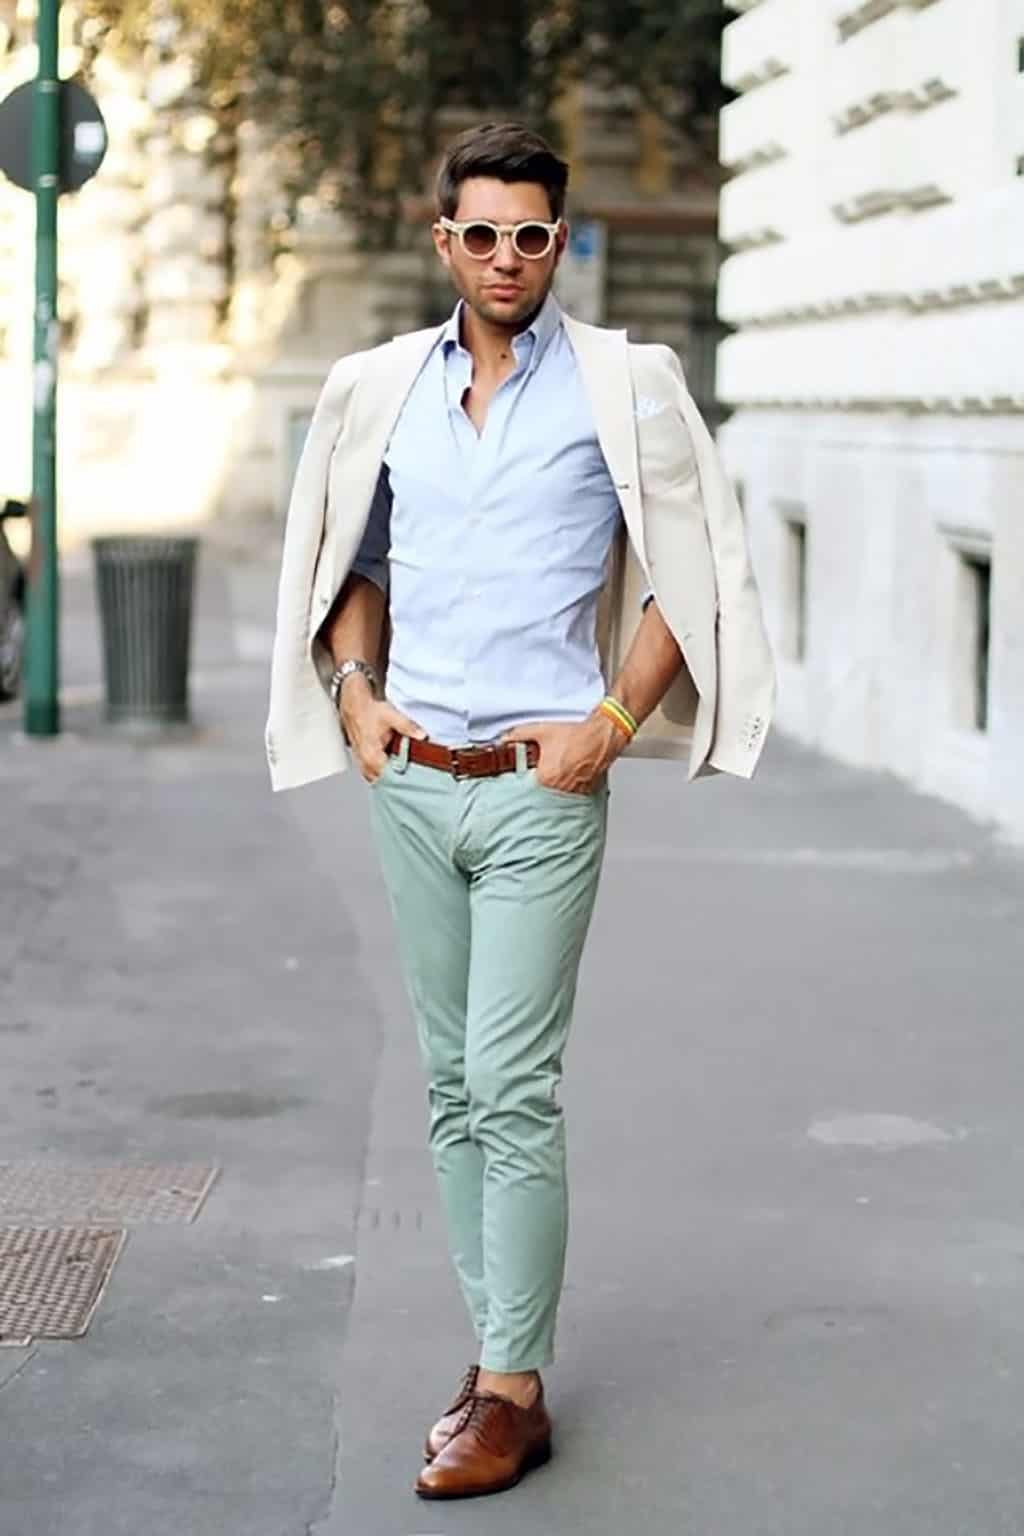 9400b0c90384 Men's Style Guide: How to Be Smart-Casual This Fall - Unfinished ...